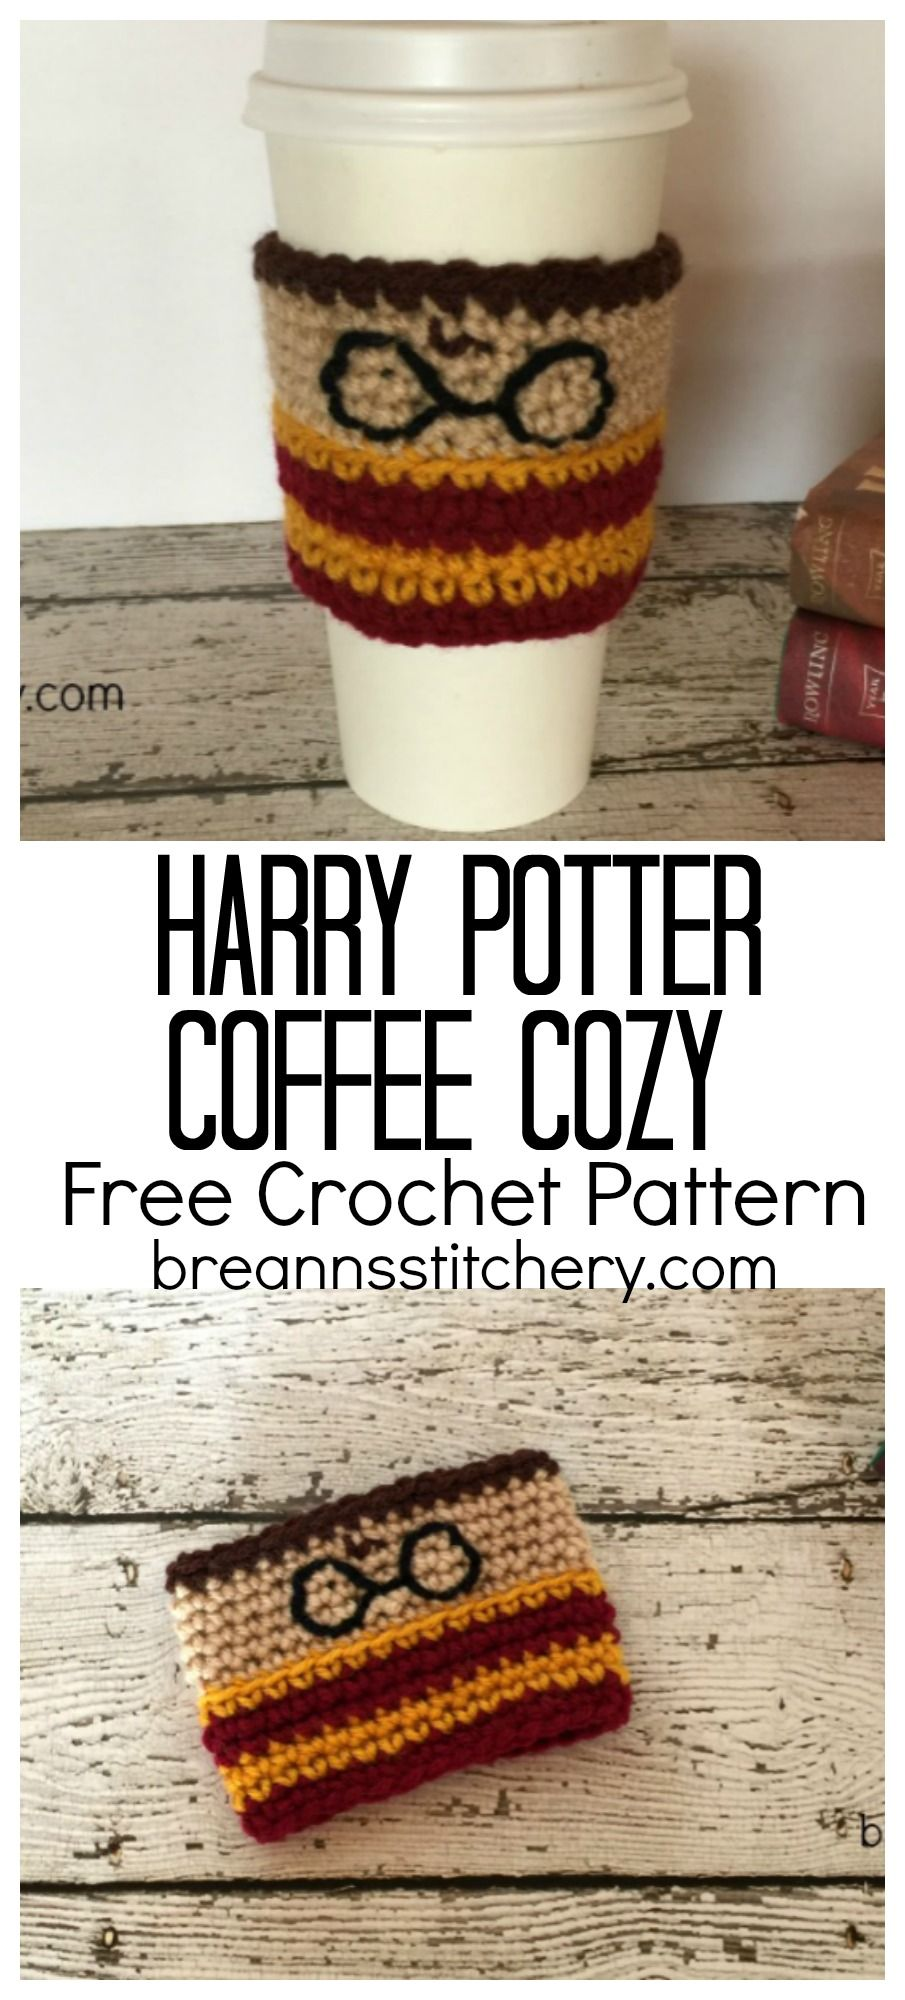 Are you a Harry Potter fan? Know someone who is? Then this pattern ...